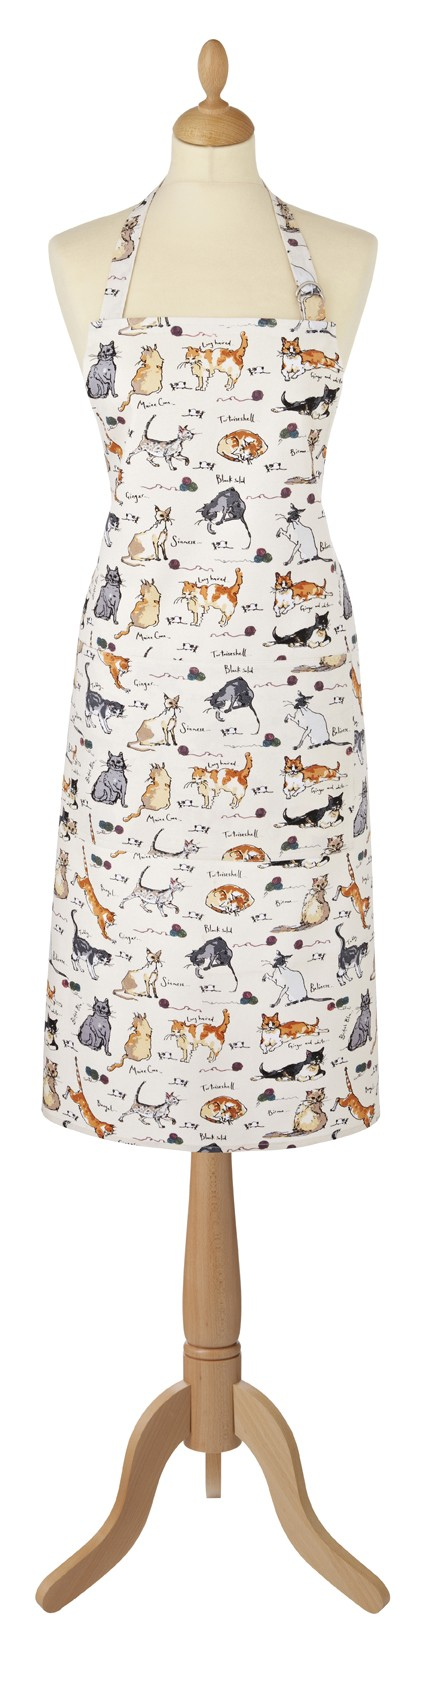 MF Cats Cotton Apron